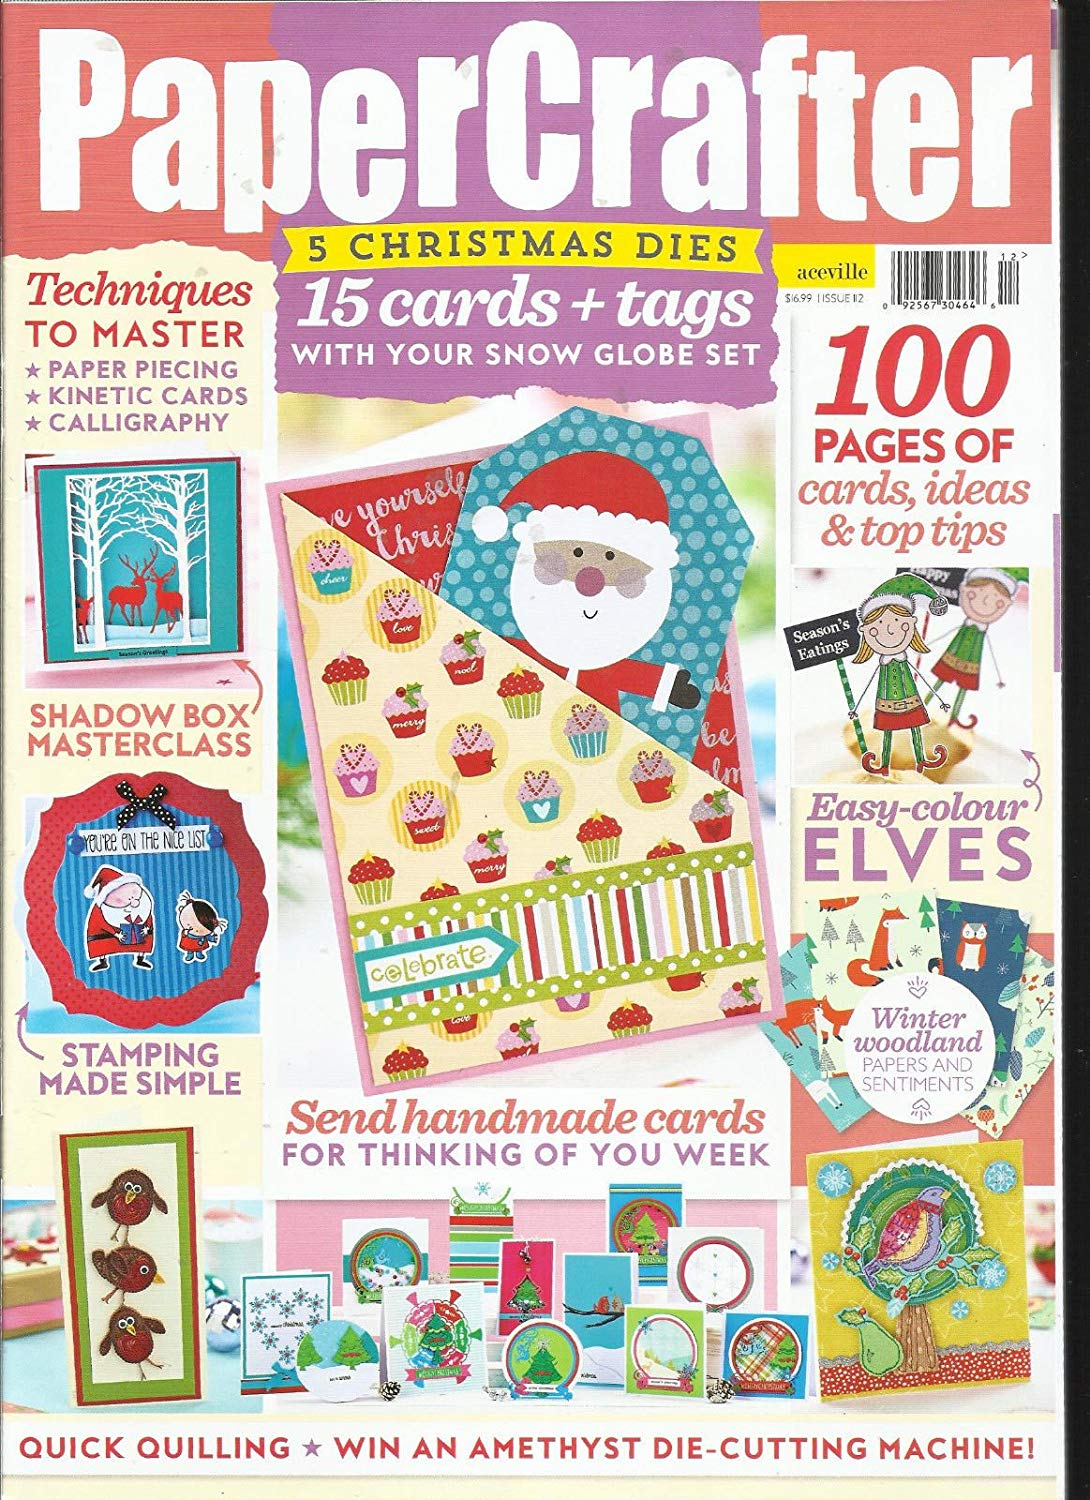 PAPER CRAFTER ISSUE, 2017 # 112 FREE GIFTS OR CARD KIT ARE NOT INCLUDED.